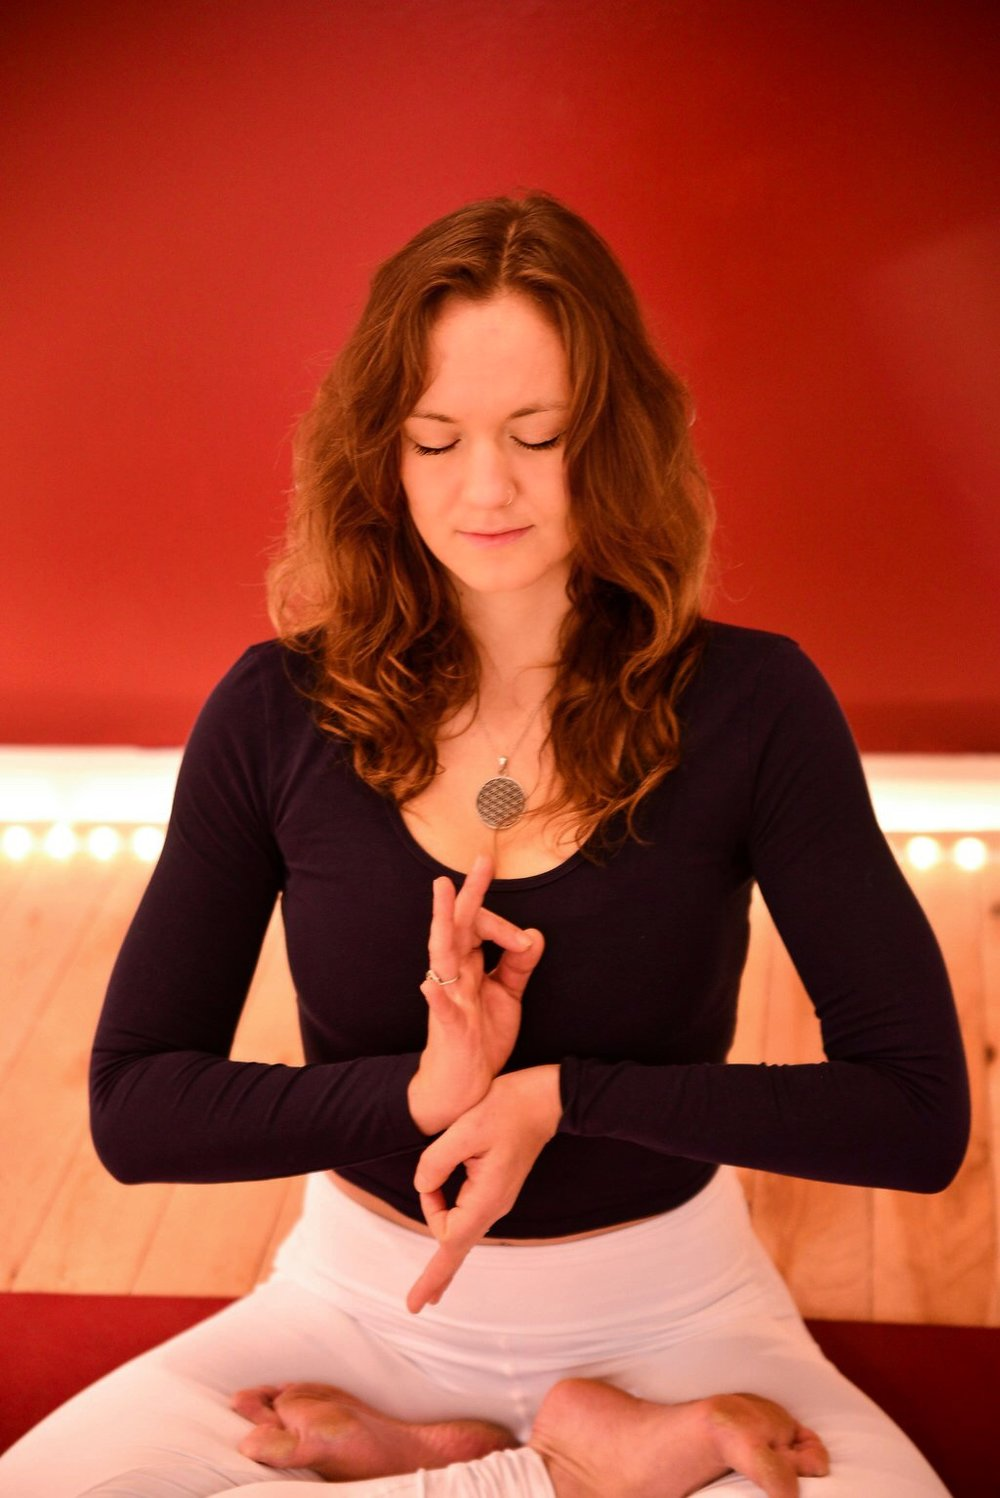 Align Divine Alchemy Flow: Carla Samson - Description: Align Divine Alchemy is the process of transmuting matter into it's highest form; it is the shift in consciousness from the physical to the spiritual. In this guided flow class, Shamanic and yogic techniques will be used, along with breath and movement - all to merge the Spirit with Earth. We will combine asana, mudra, and primal wild movements to shift our story, and come into alignment with our Divine Playfulness.About: Carla invokes the Divine and infuses the sacred into each one of her creative flowing classes. She is the